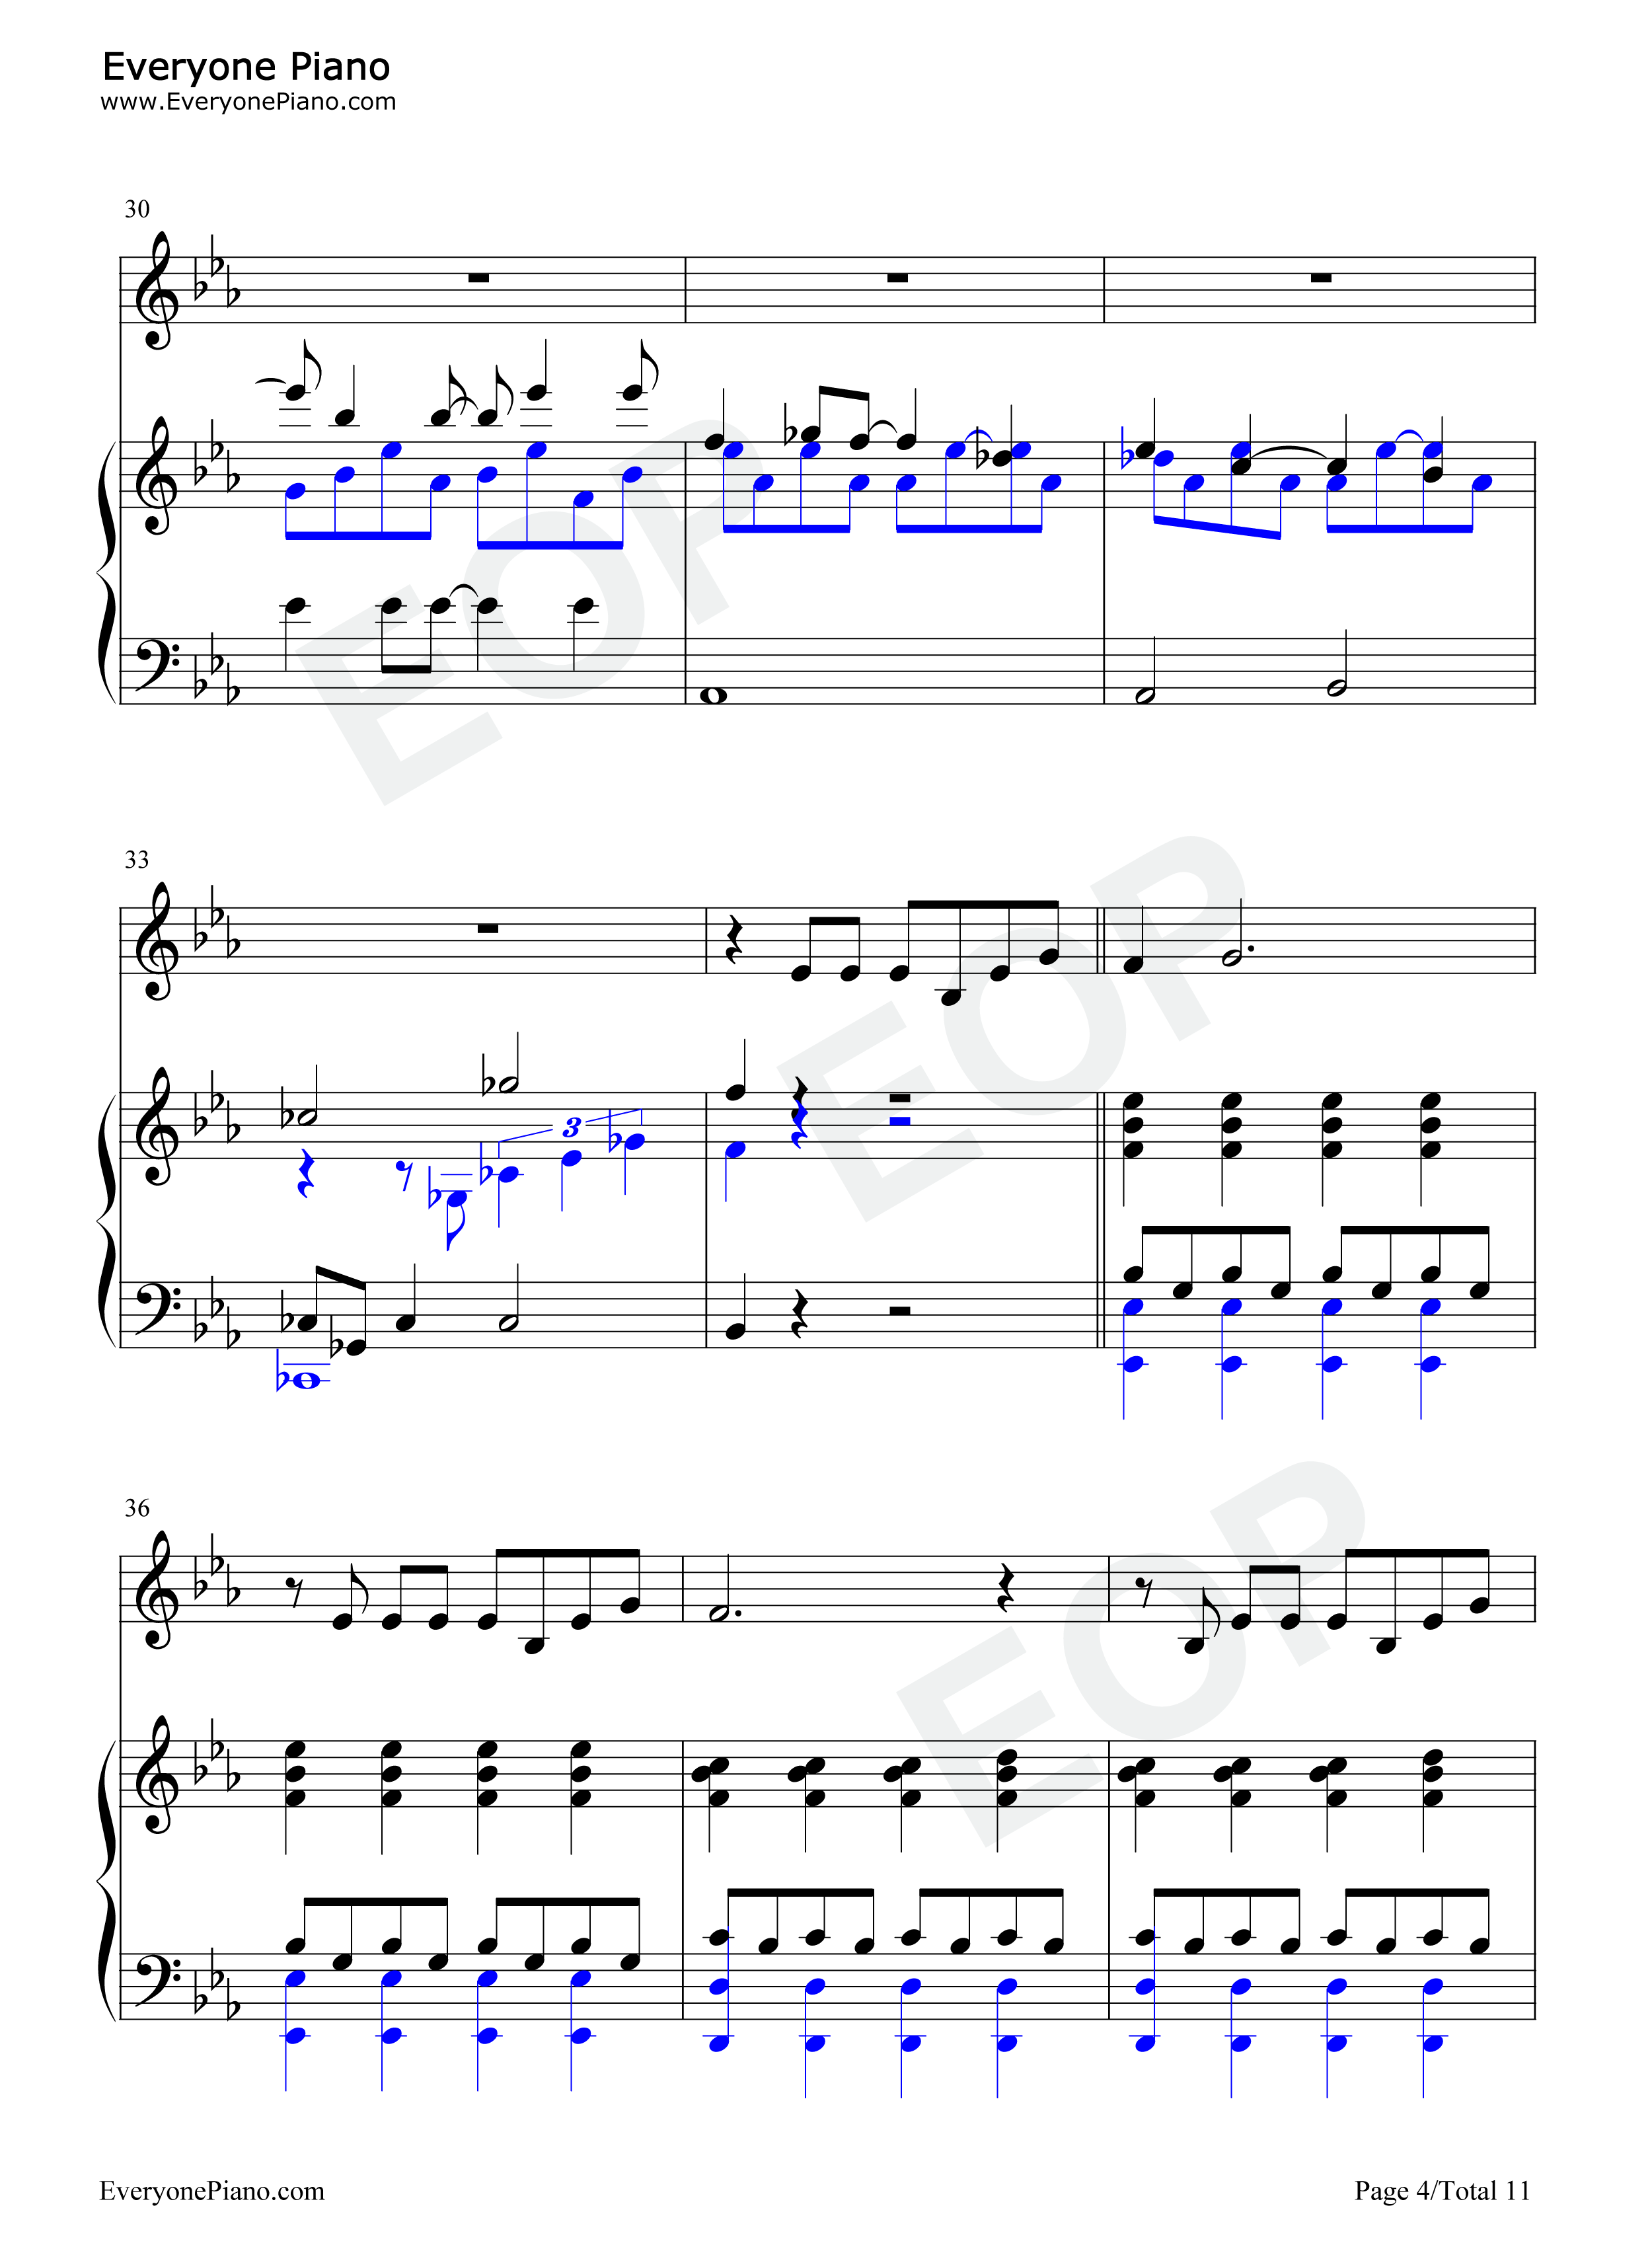 Free Sheet Music For Piano Do You Want To Build A Snowman